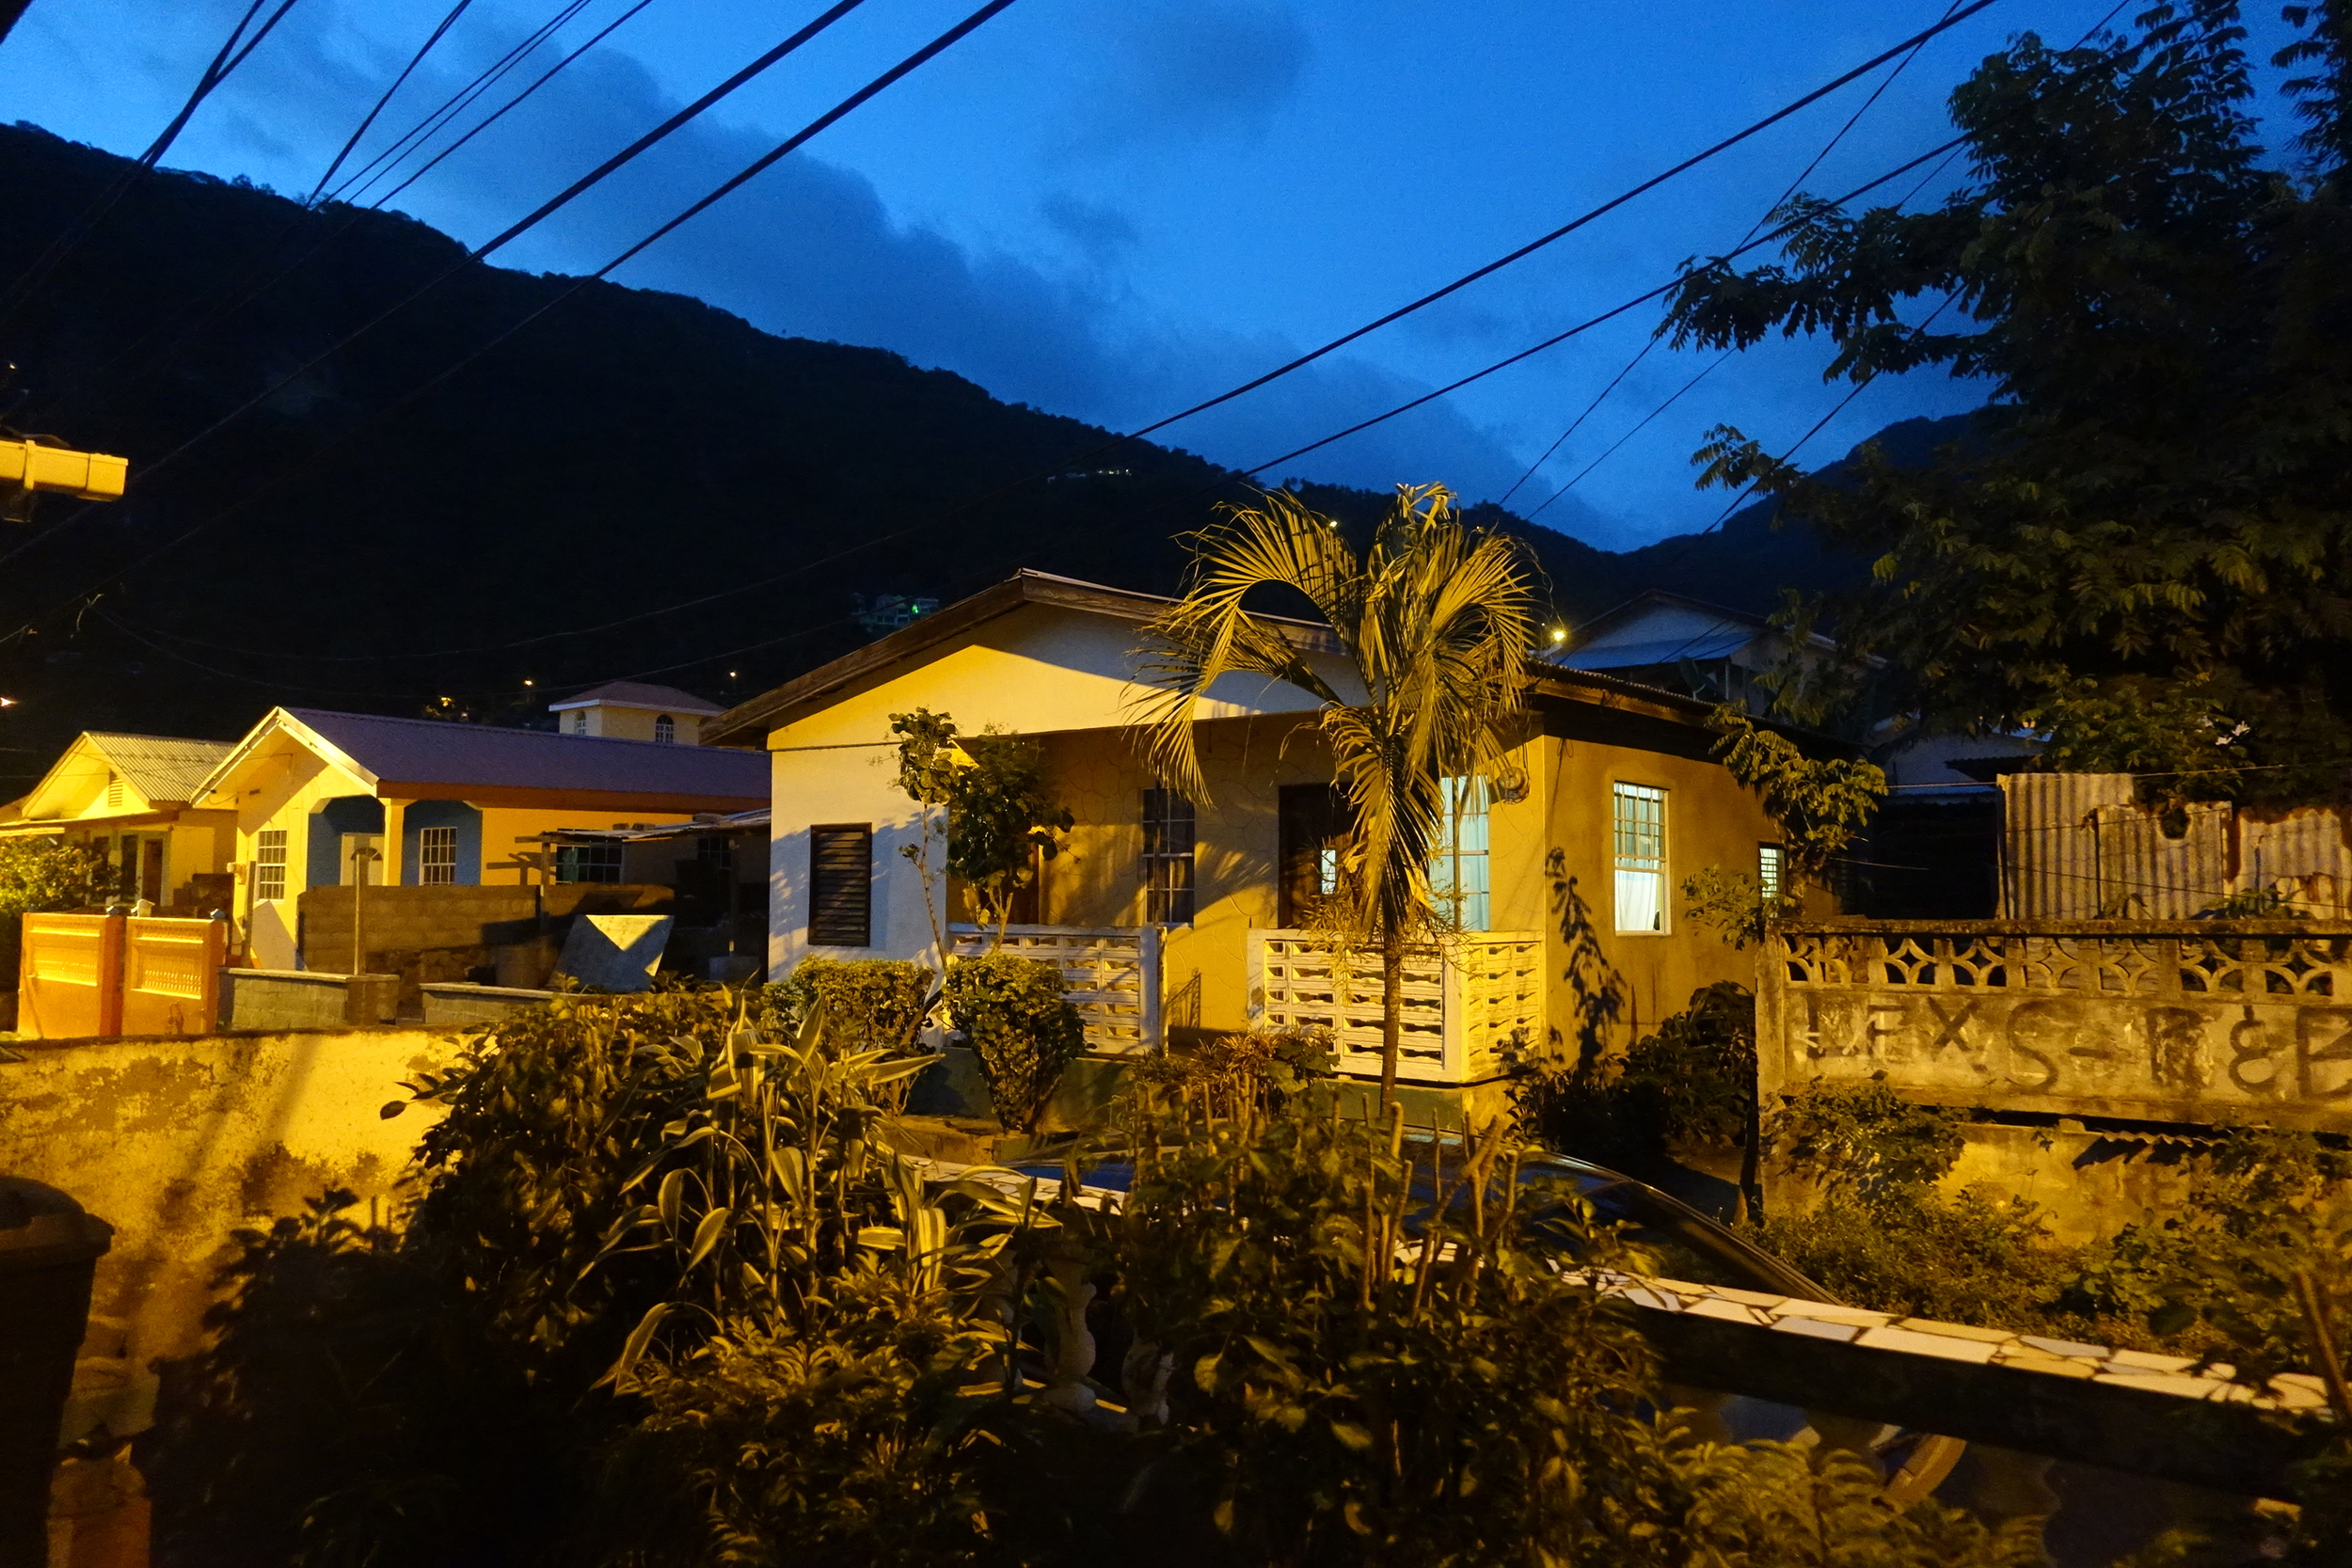 staying in the town of Soufriere -our street view